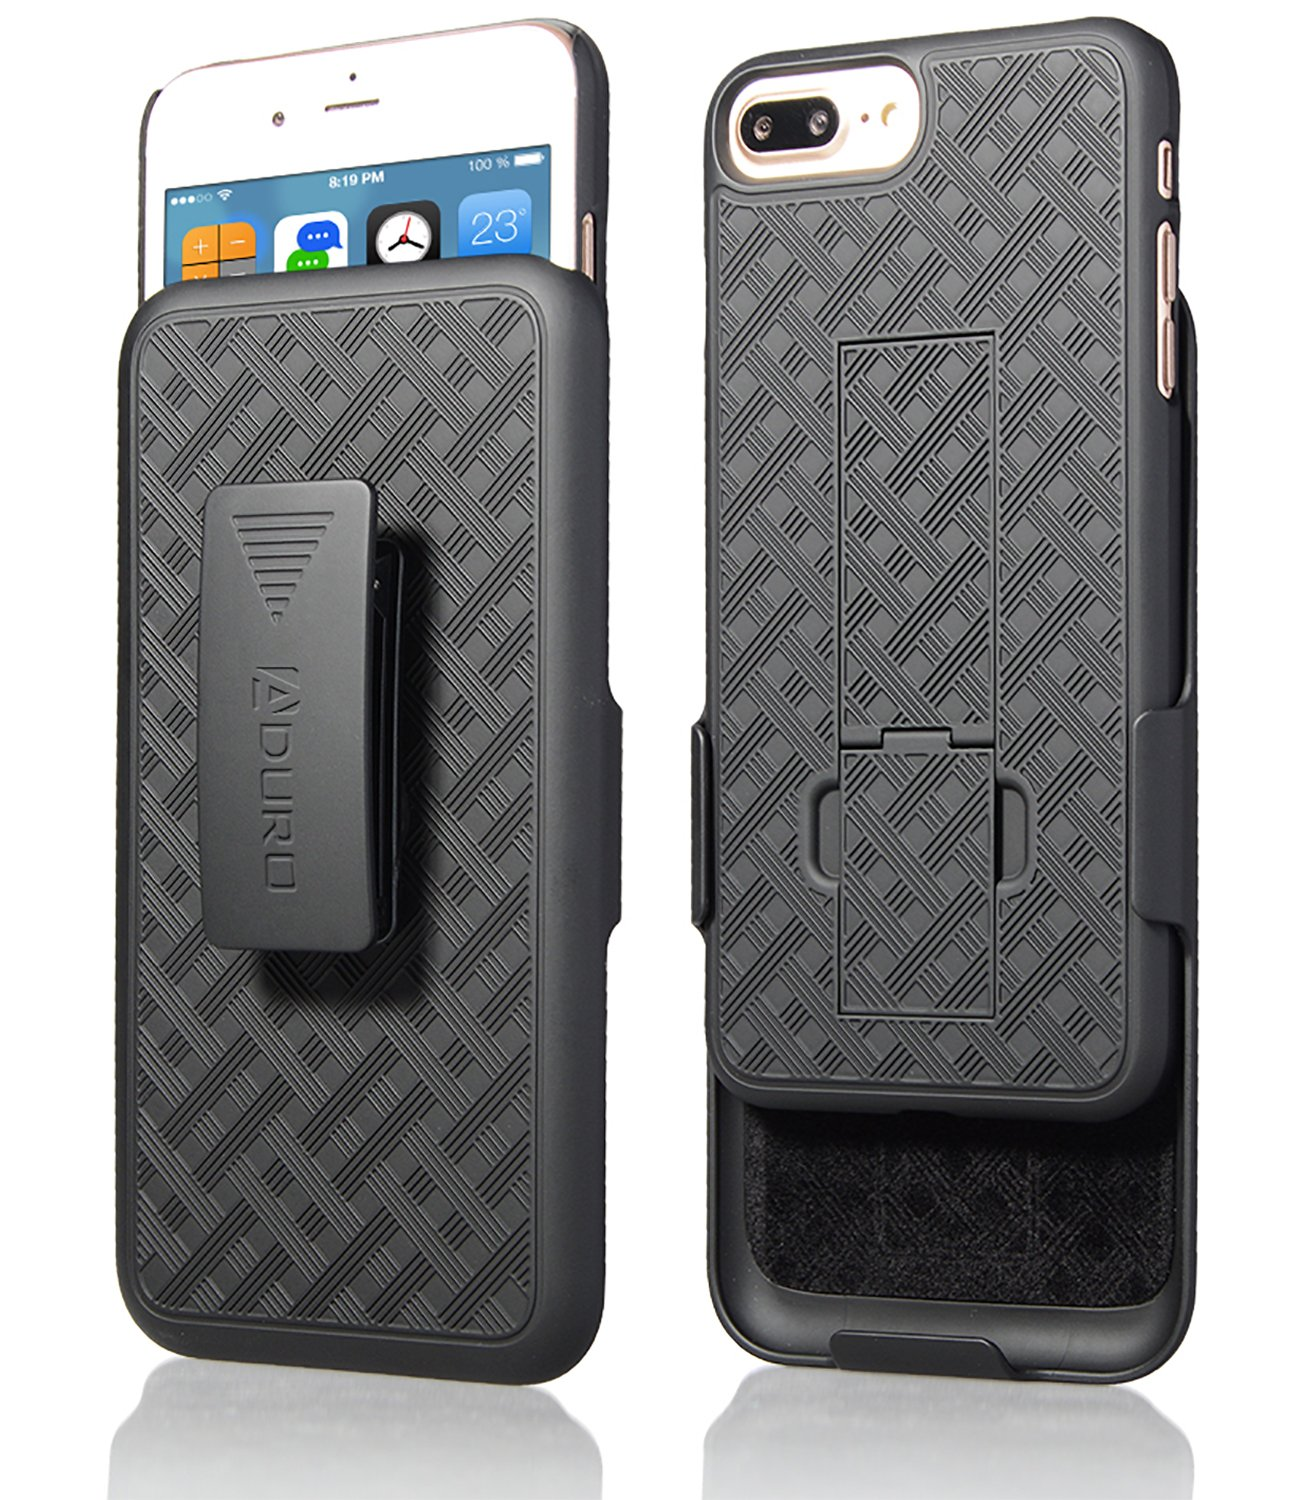 Aduro Holster Case for iPhone 8 Plus/iPhone 7 Plus (5.5'') Combo Shell & Holster Slim Shell Case with Built-in Kickstand + Swivel Belt Clip Holster for Apple iPhone 8 Plus and iPhone 7 Plus ONLY